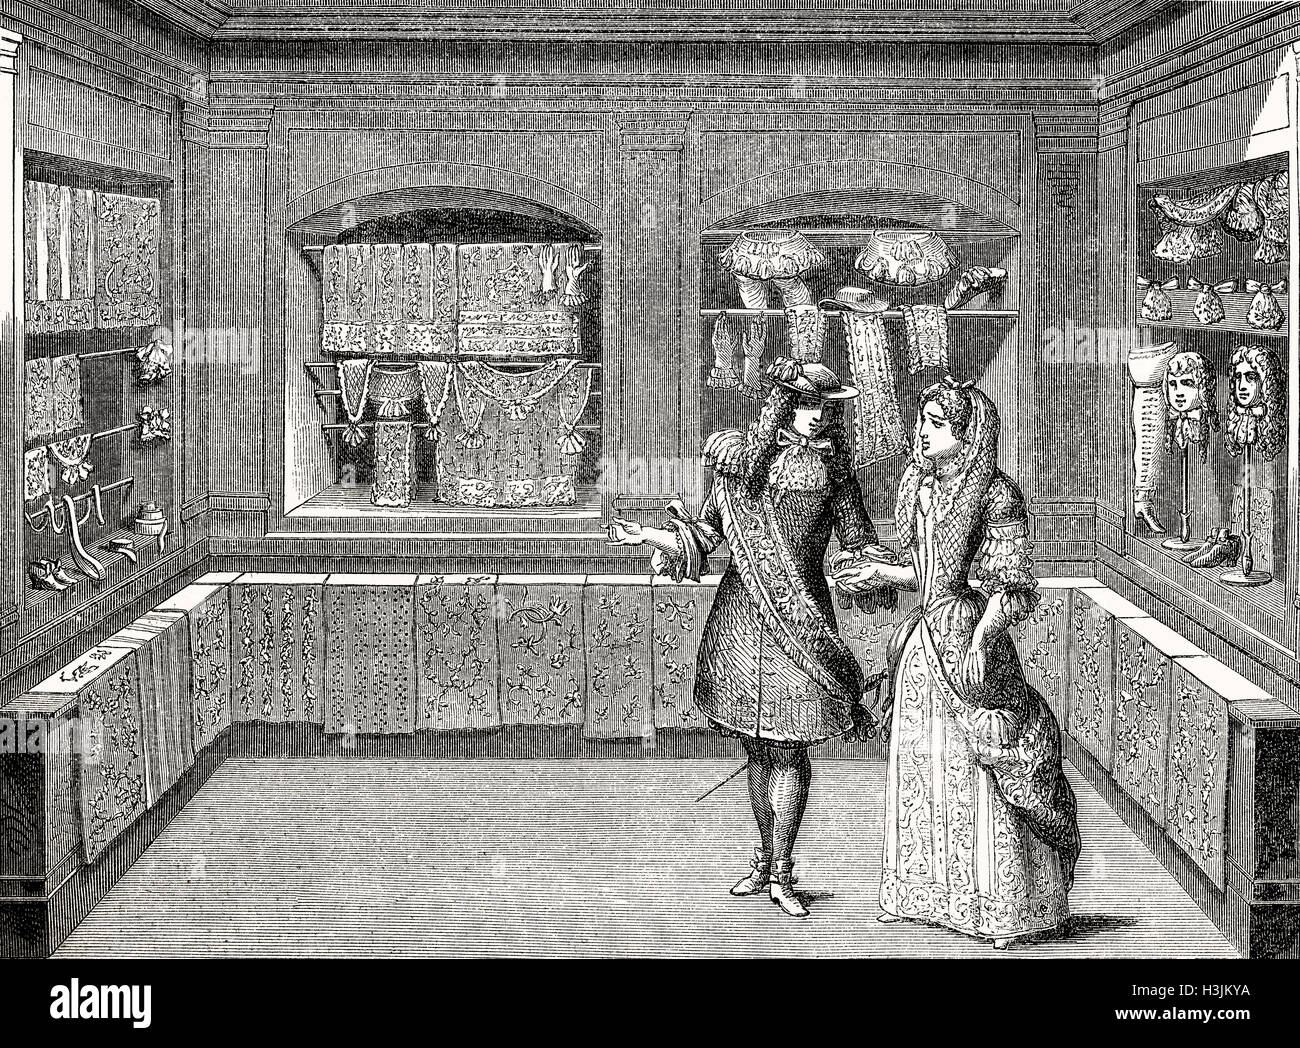 French Boutique, 17th century - Stock Image